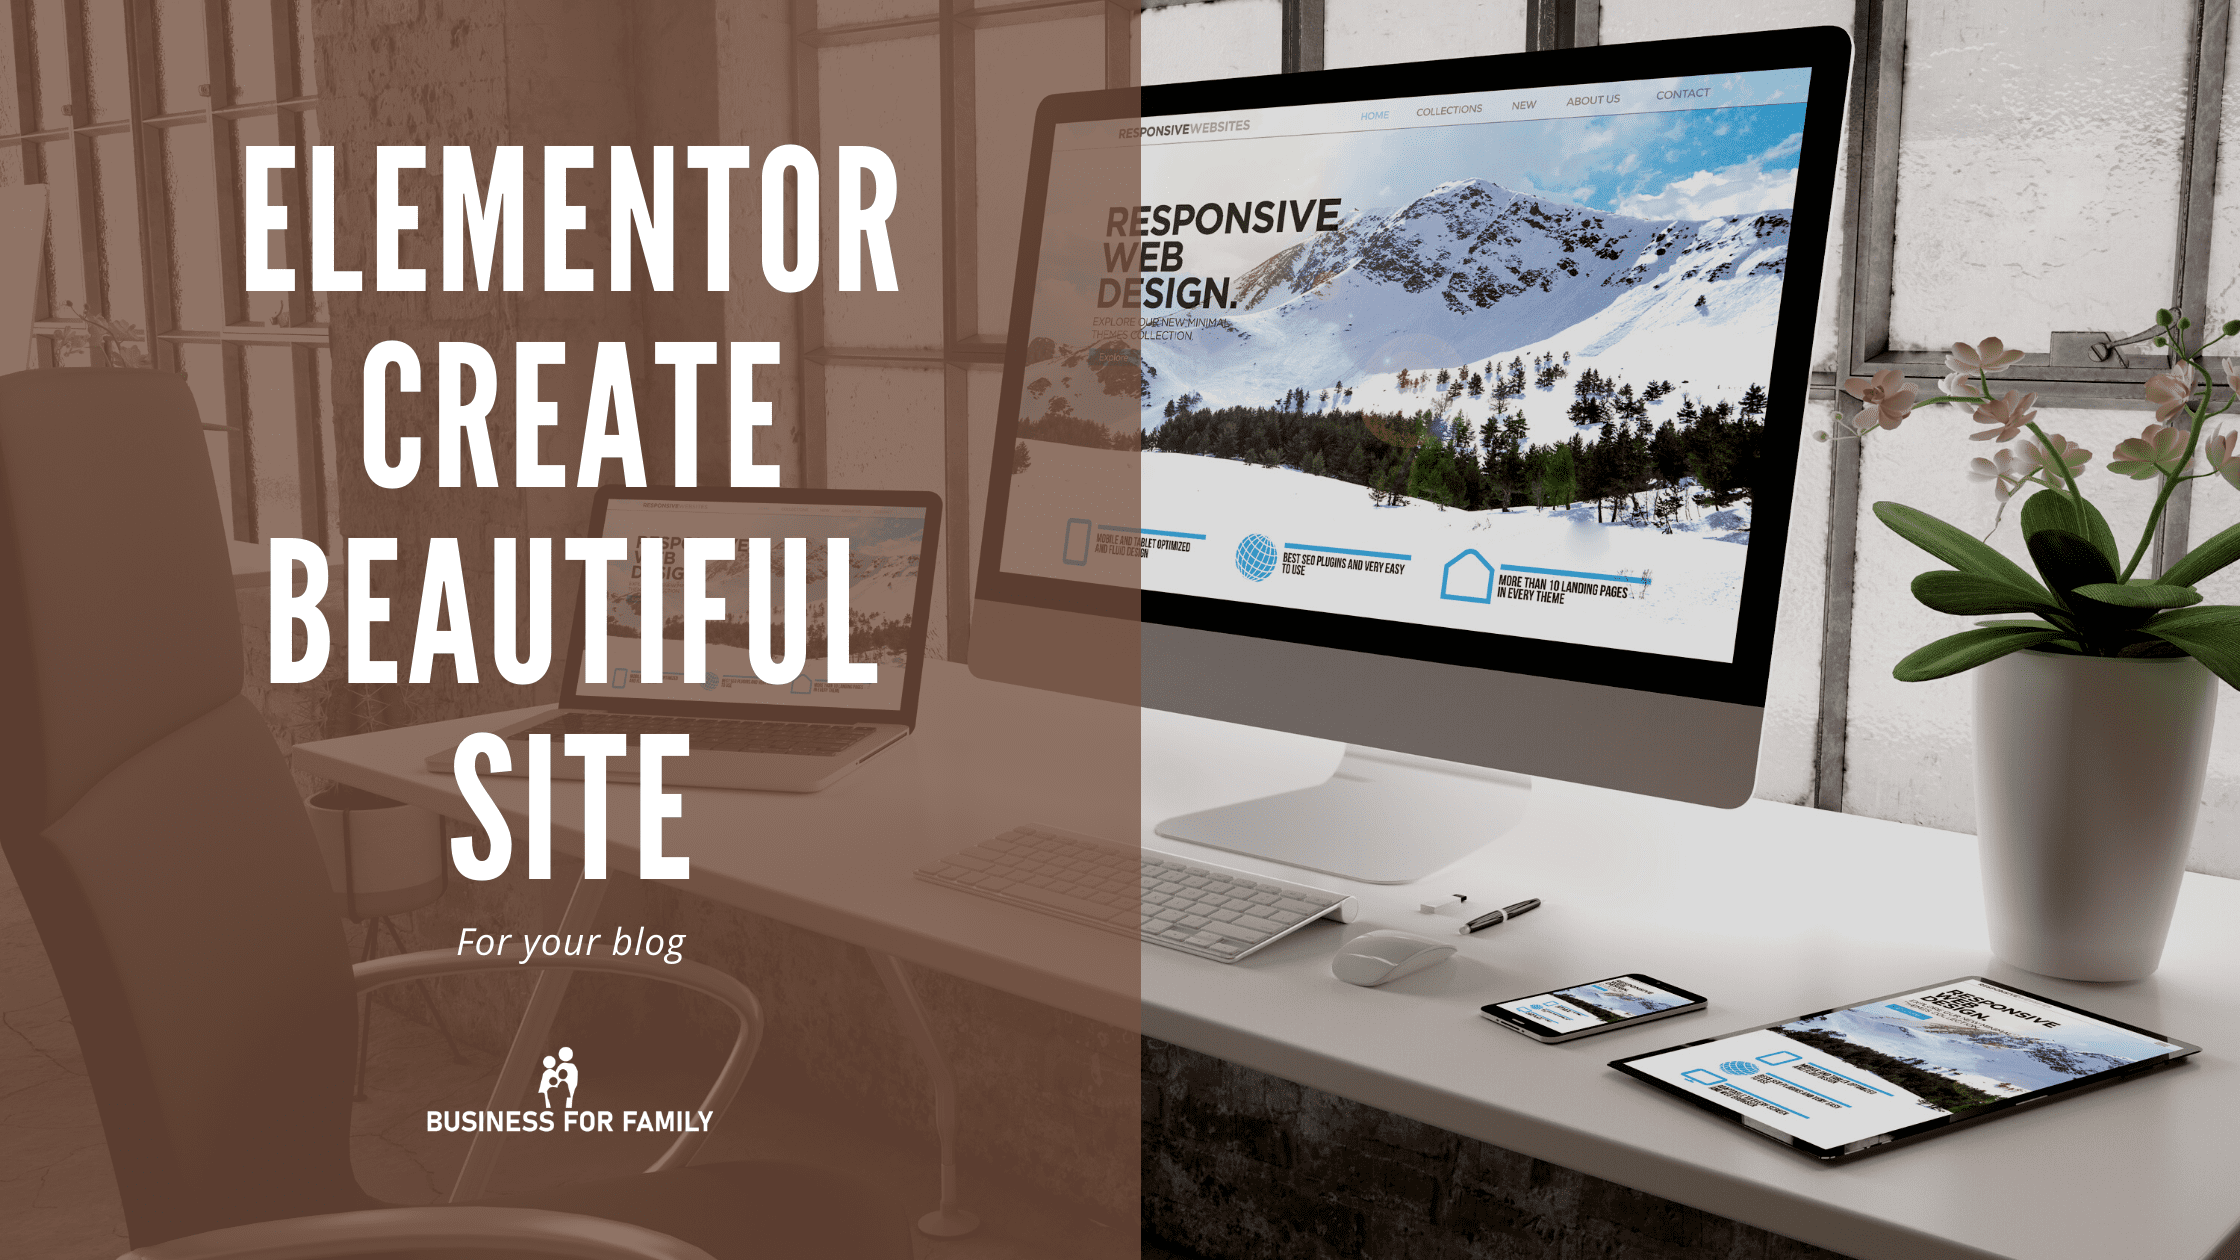 Elementor helps to create beautiful site